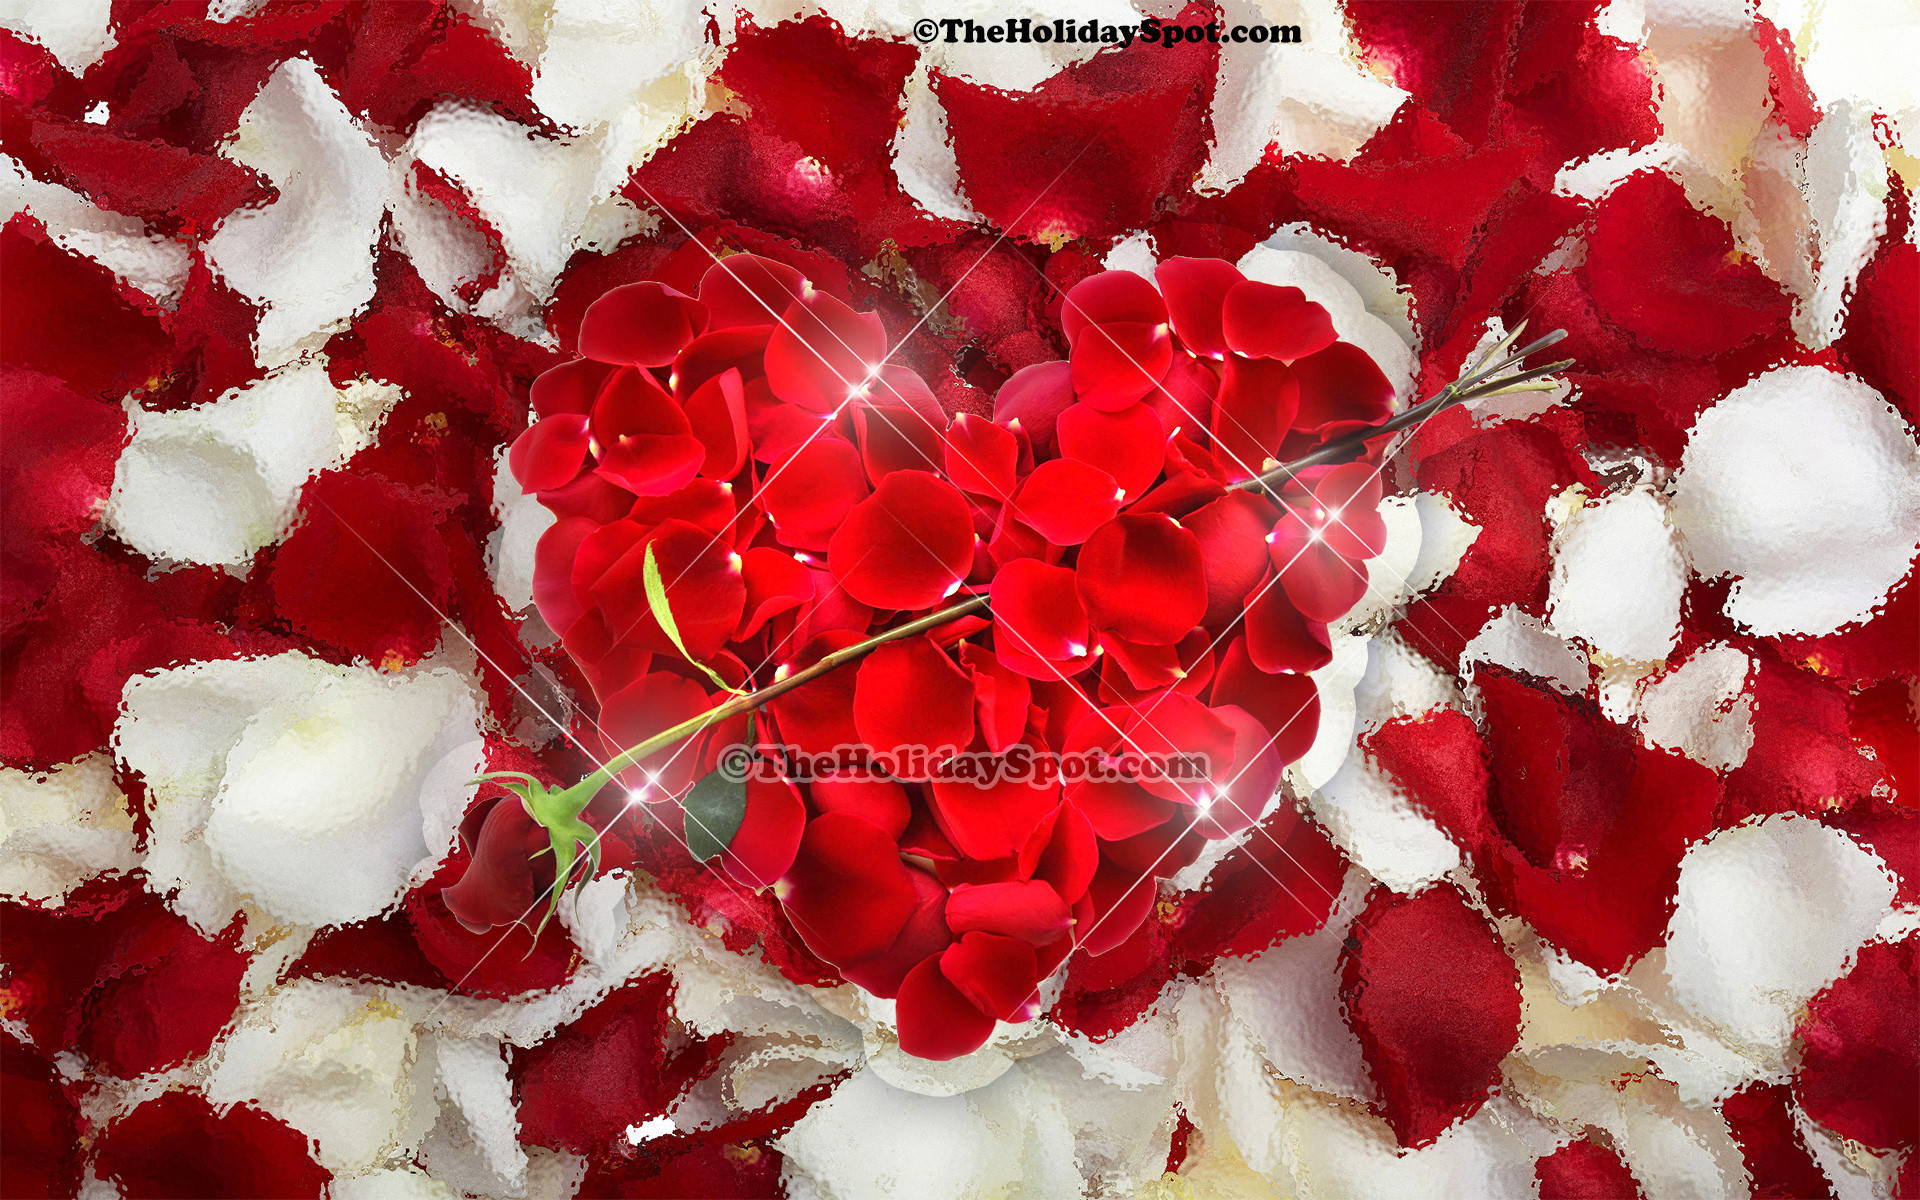 Red rose heart wallpaper 53 images 1920x1080 heart tag heart flower valentine beautiful romantic roses pretty red love flowers wallpapers new for izmirmasajfo